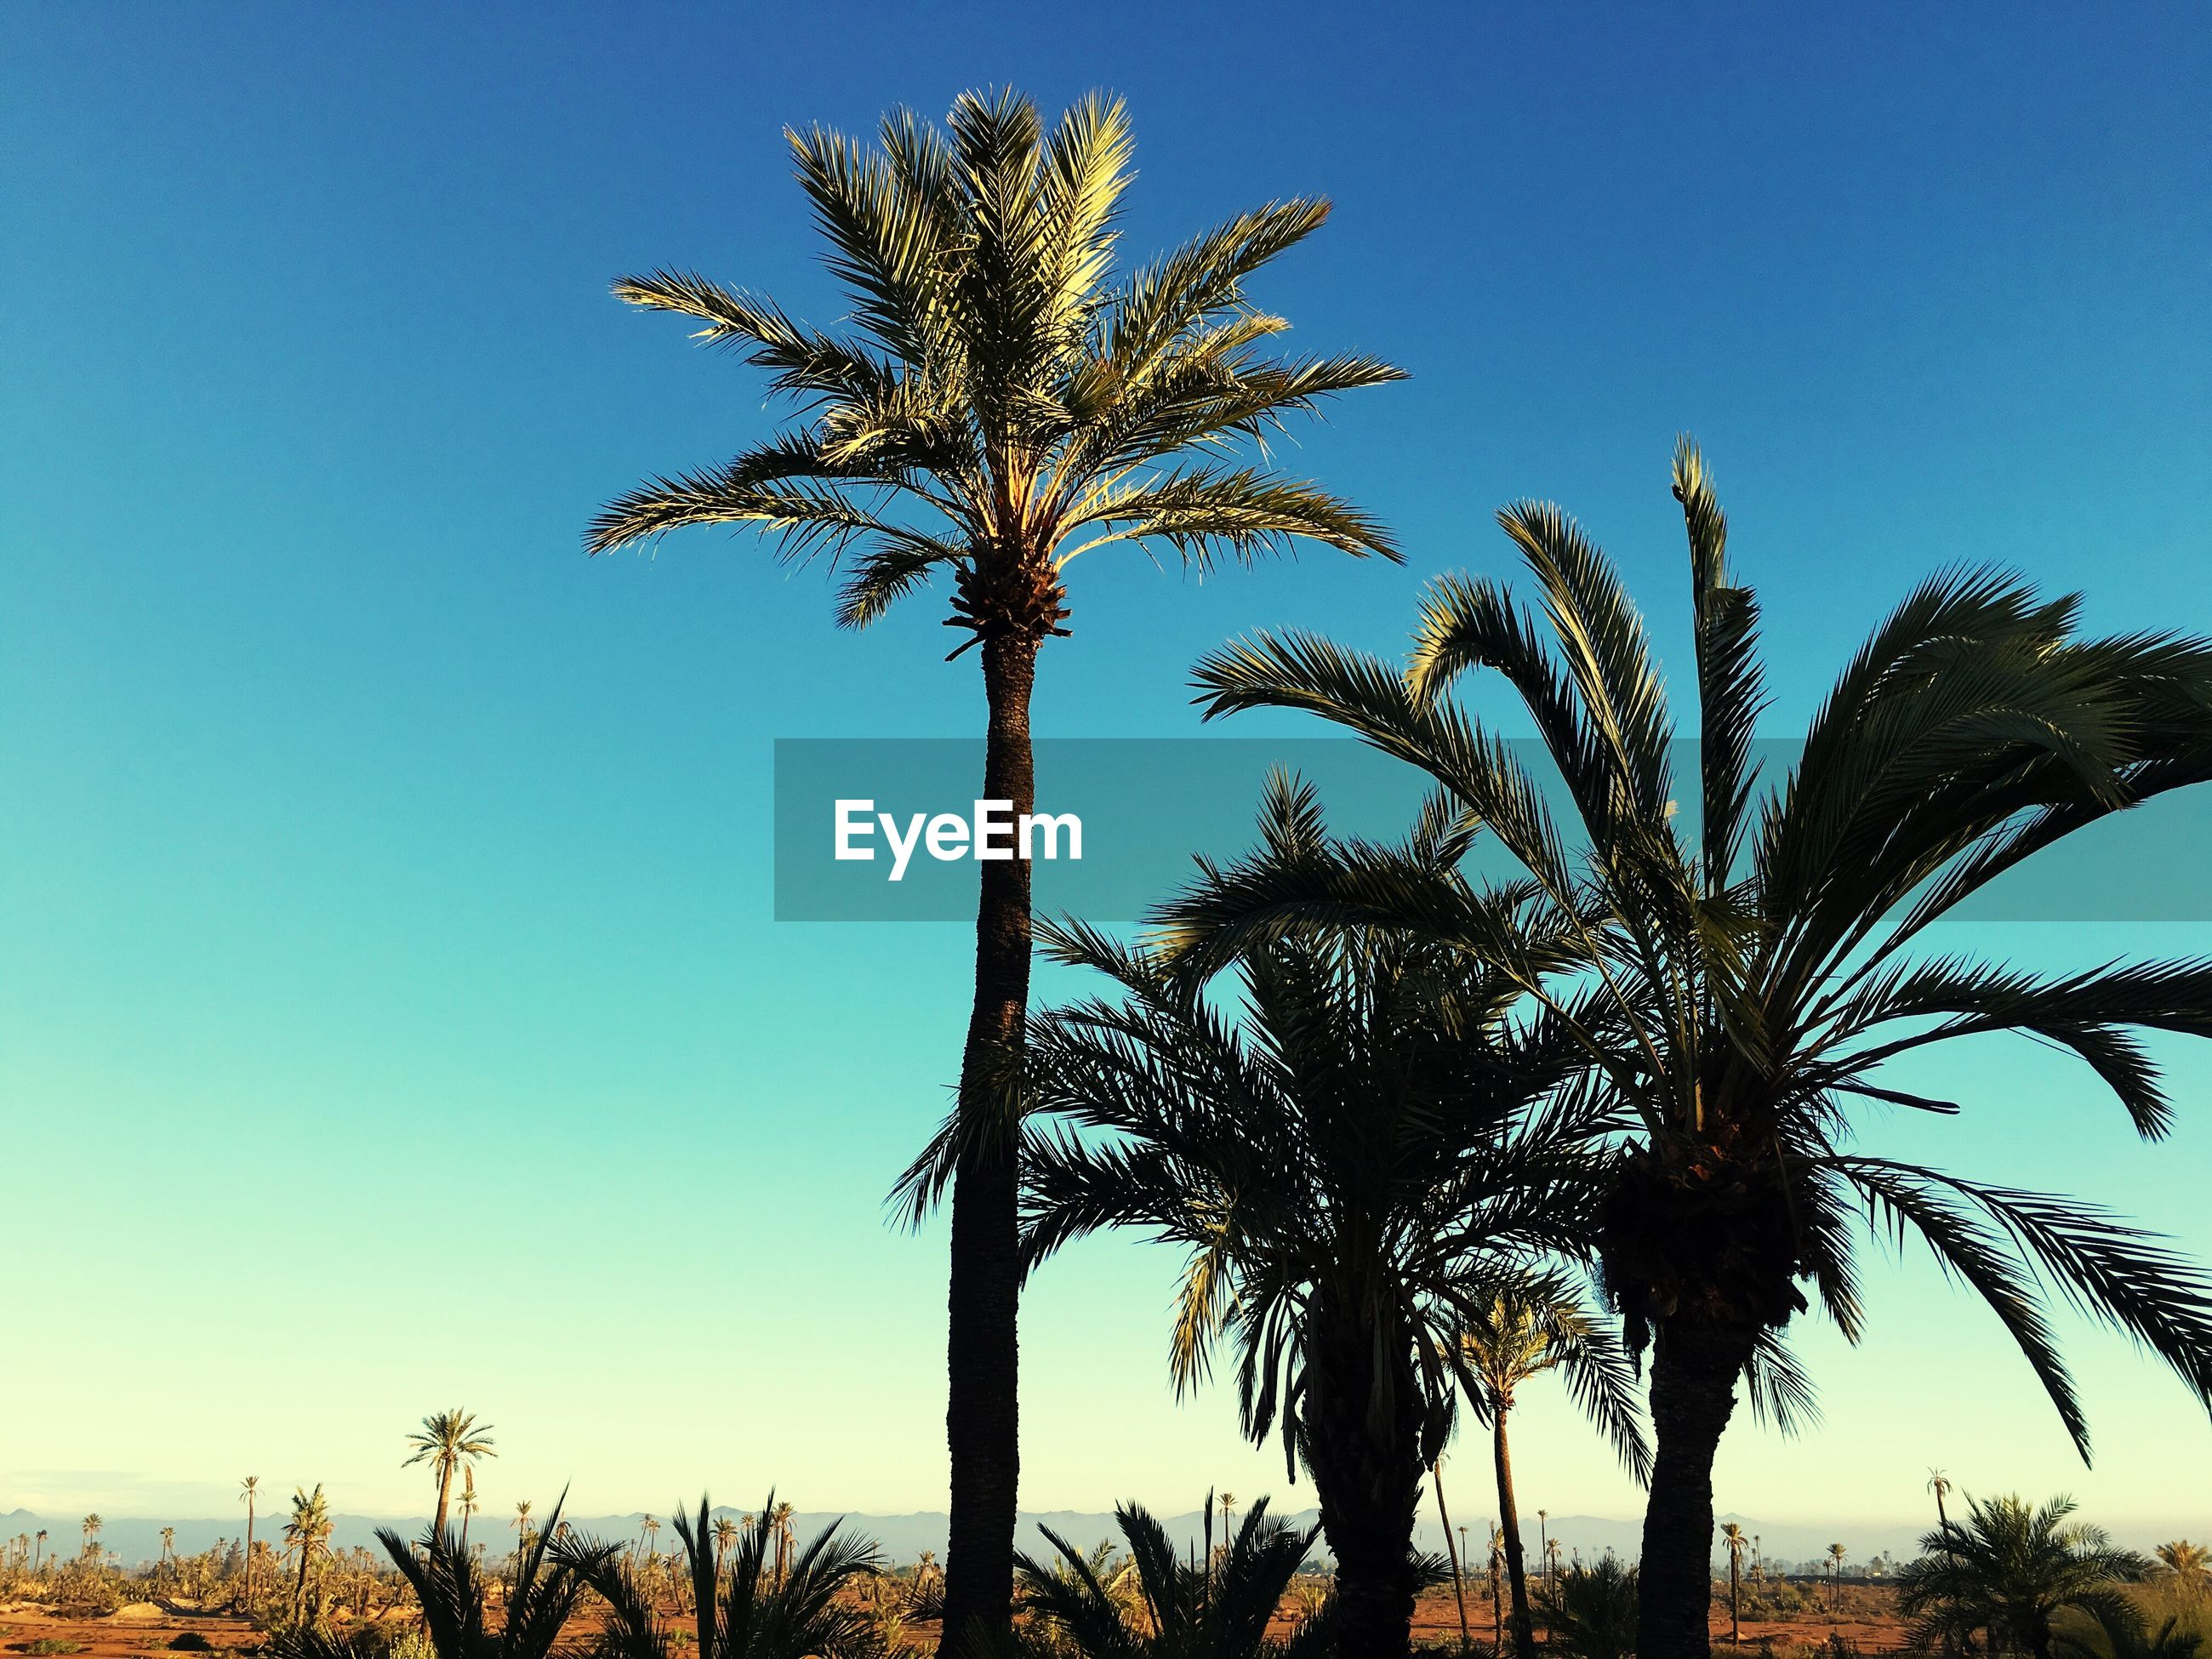 tree, low angle view, sky, growth, nature, palm tree, no people, outdoors, beauty in nature, branch, close-up, day, star - space, fame